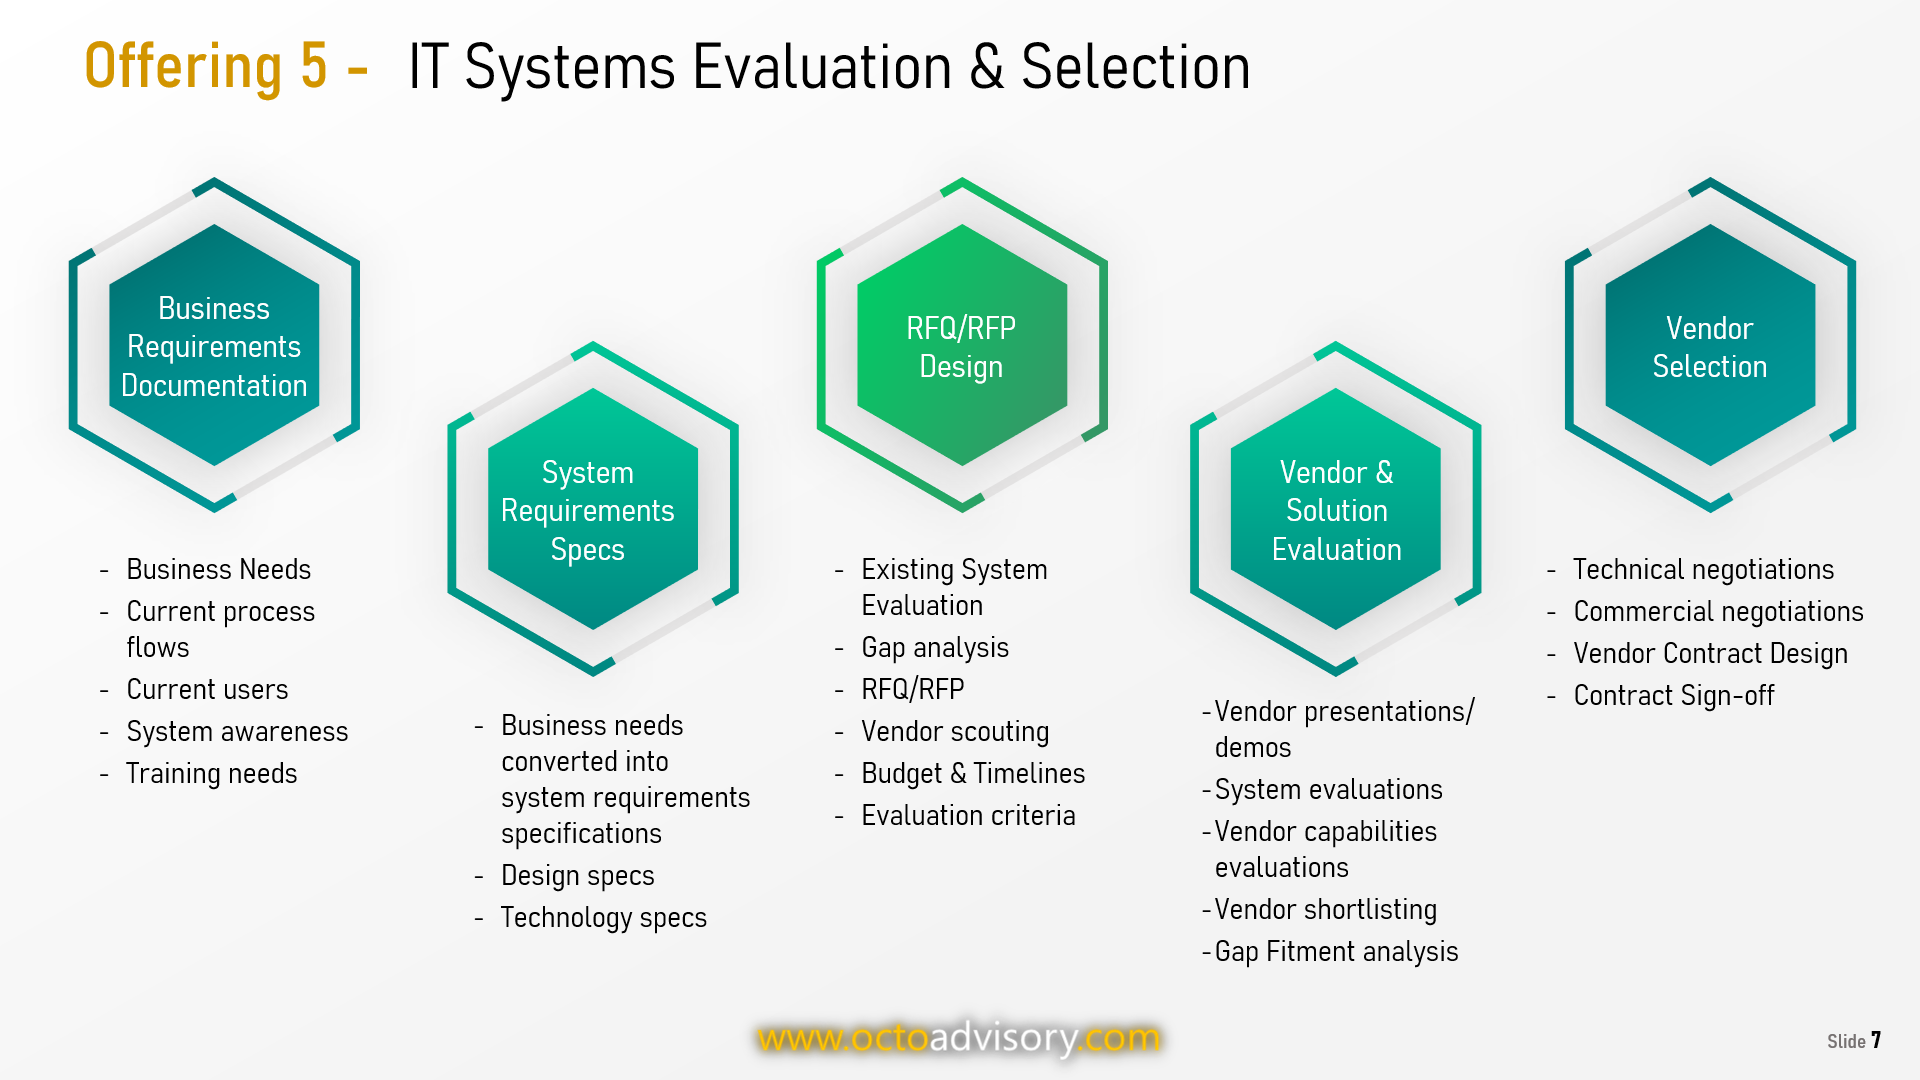 OCTO Technology Evaluation Services